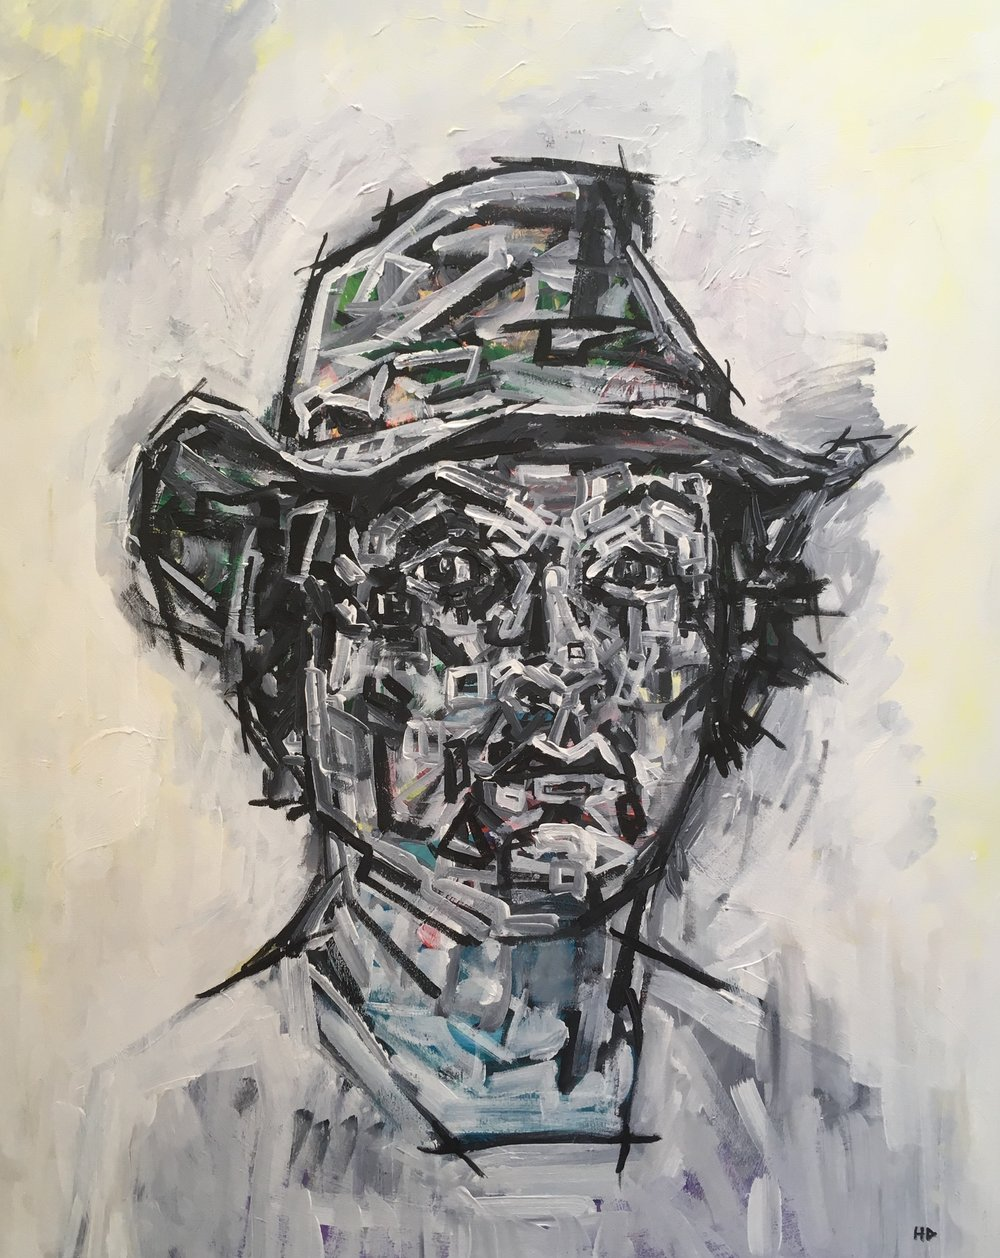 Self Portrait in hat  acrylic on canvas  60 by 80 by 1.5 cm  unframed  £750